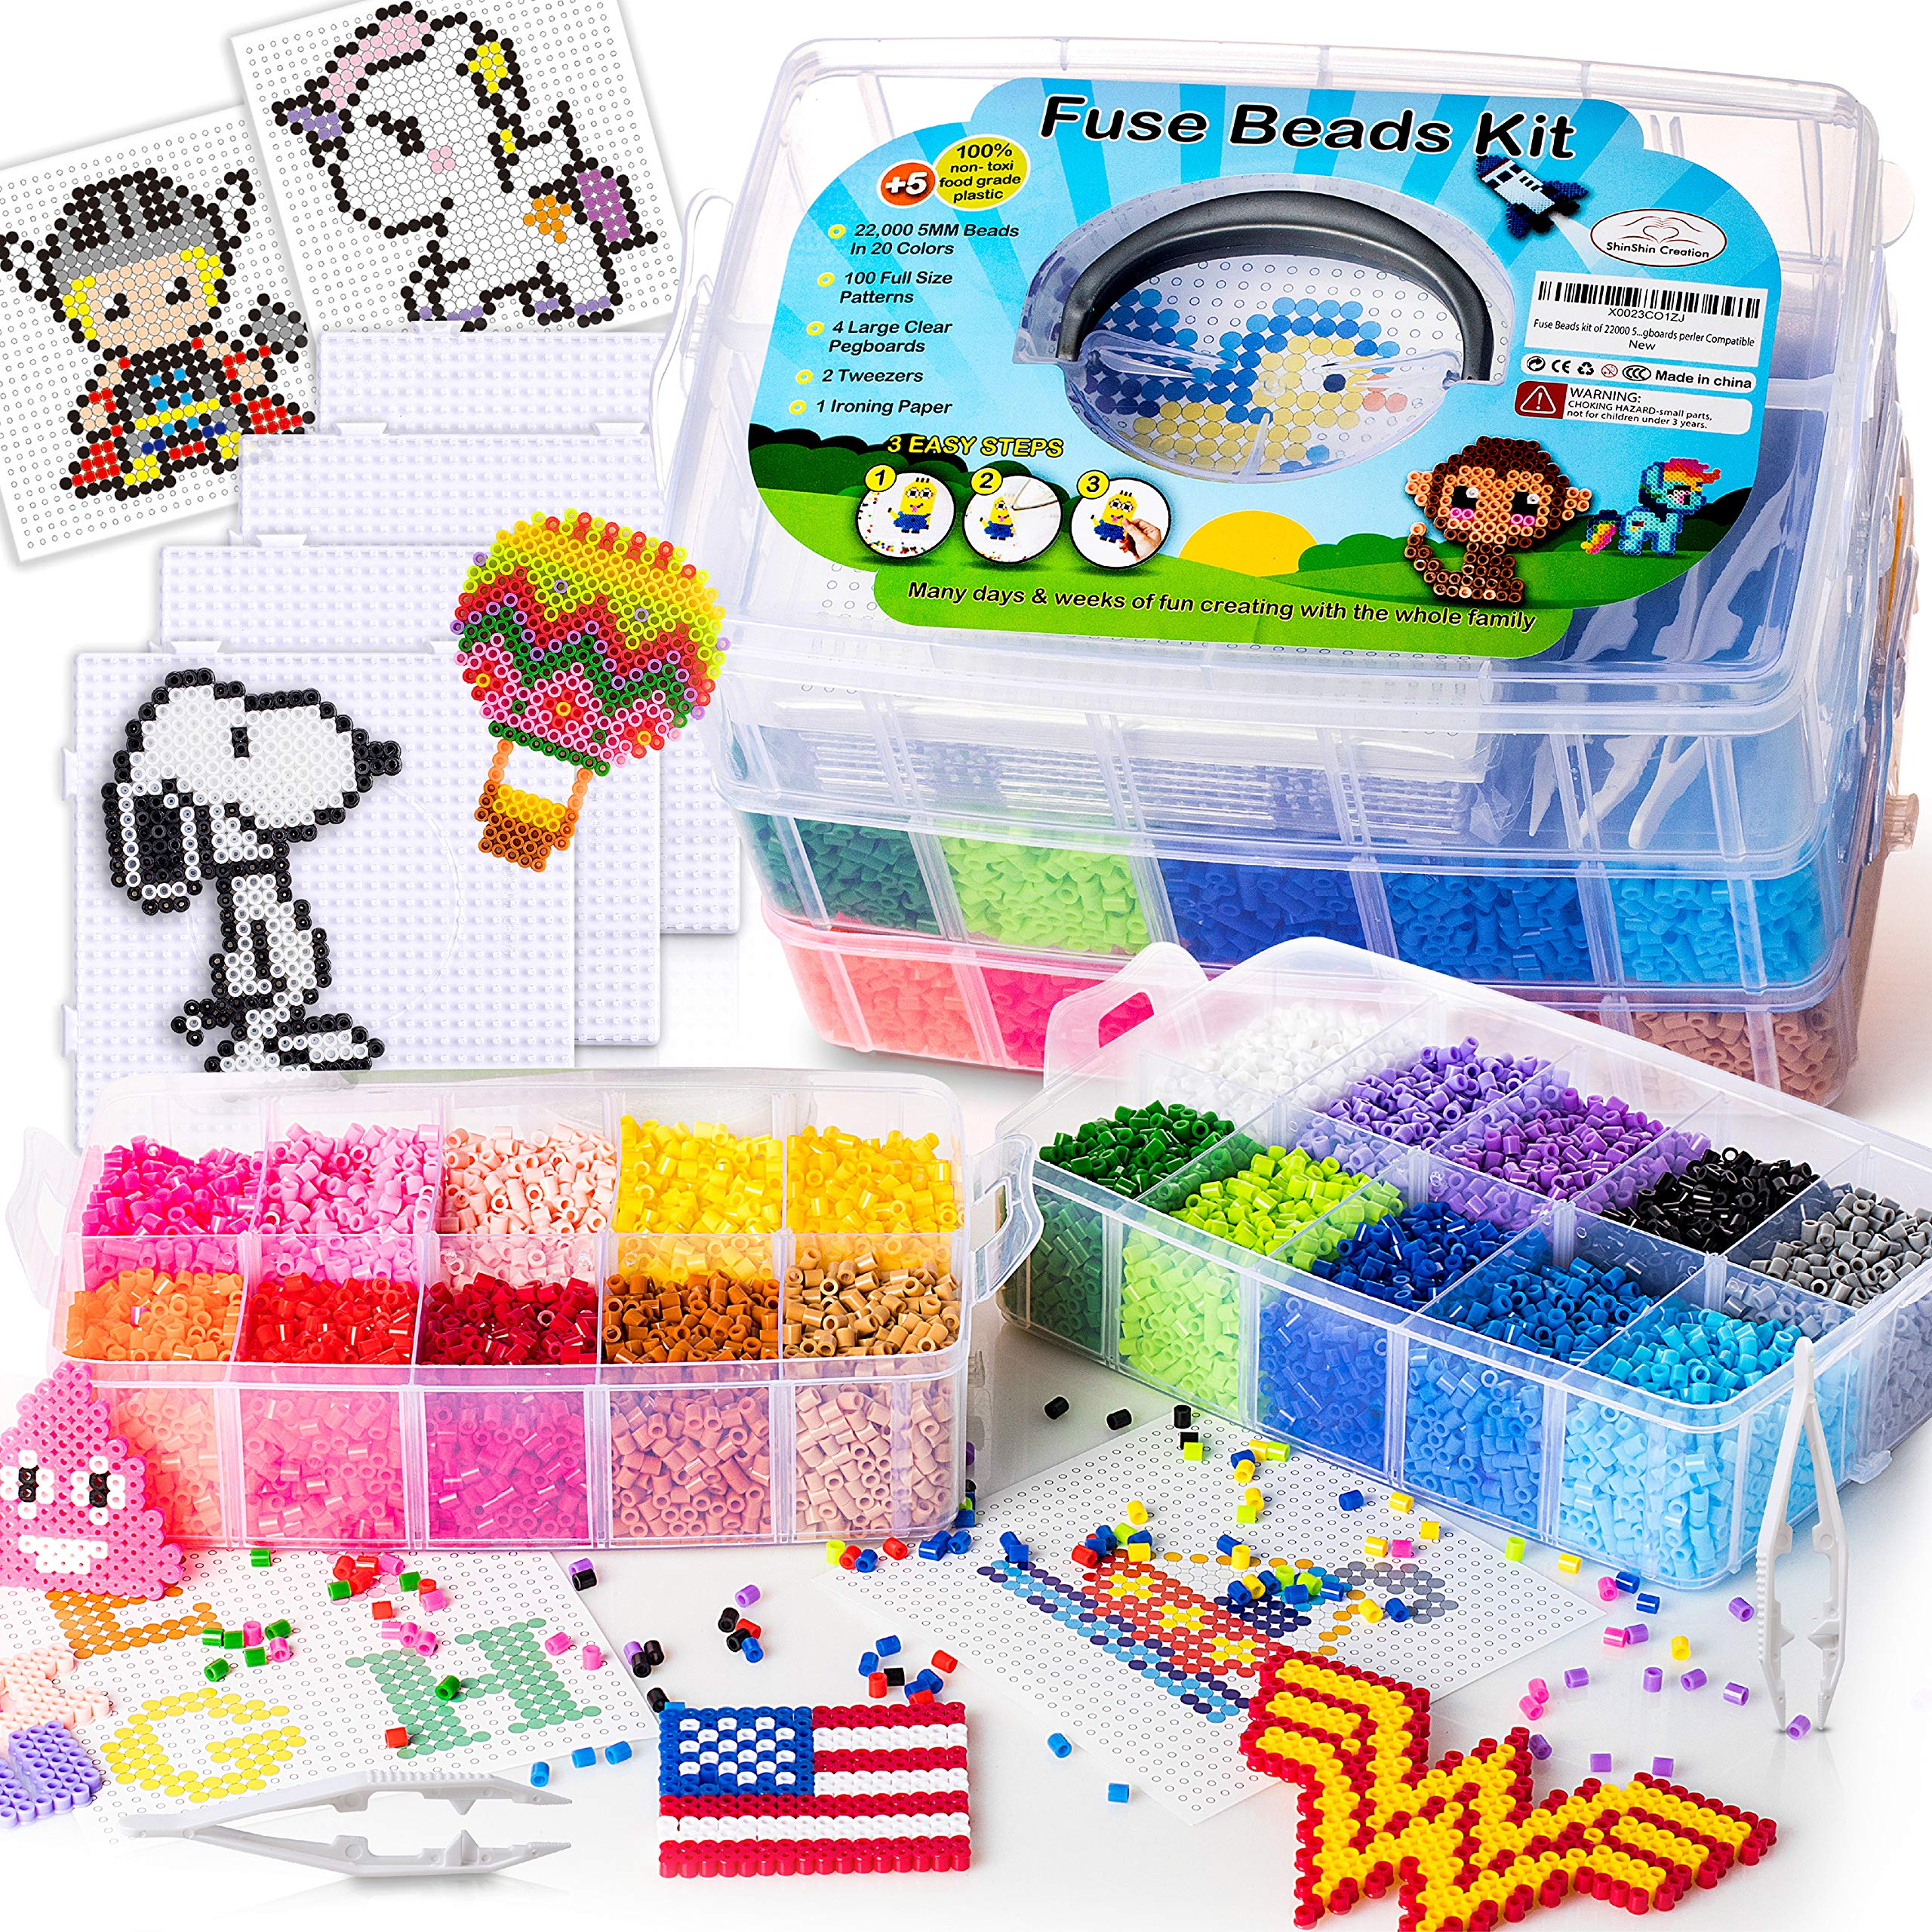 Fuse Beads Kit by ShinShin Creation: 22,000 Beads 5mm with 100 Full Size Patterns, 20 Pre-Sorted Colors, 4 Big Square Clear Pegboards, 2 Tweezers and Ironing Paper, Perler Beads Compatible by shinshin creation